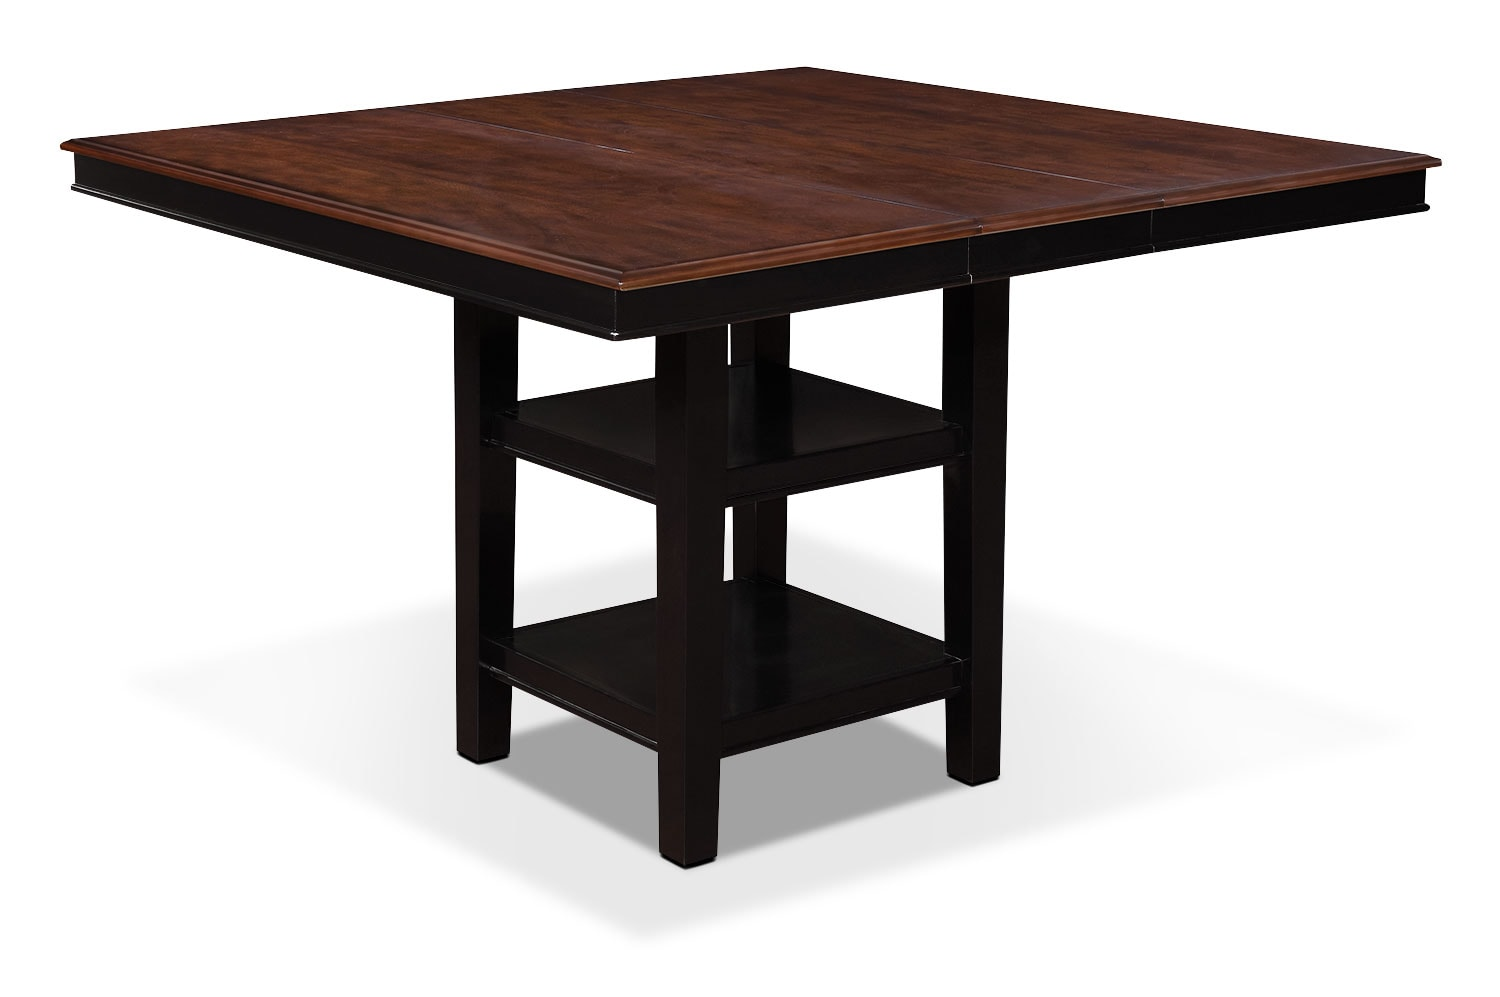 Dining Room Furniture - Nyla Counter-Height Dining Table – Black and Cherry